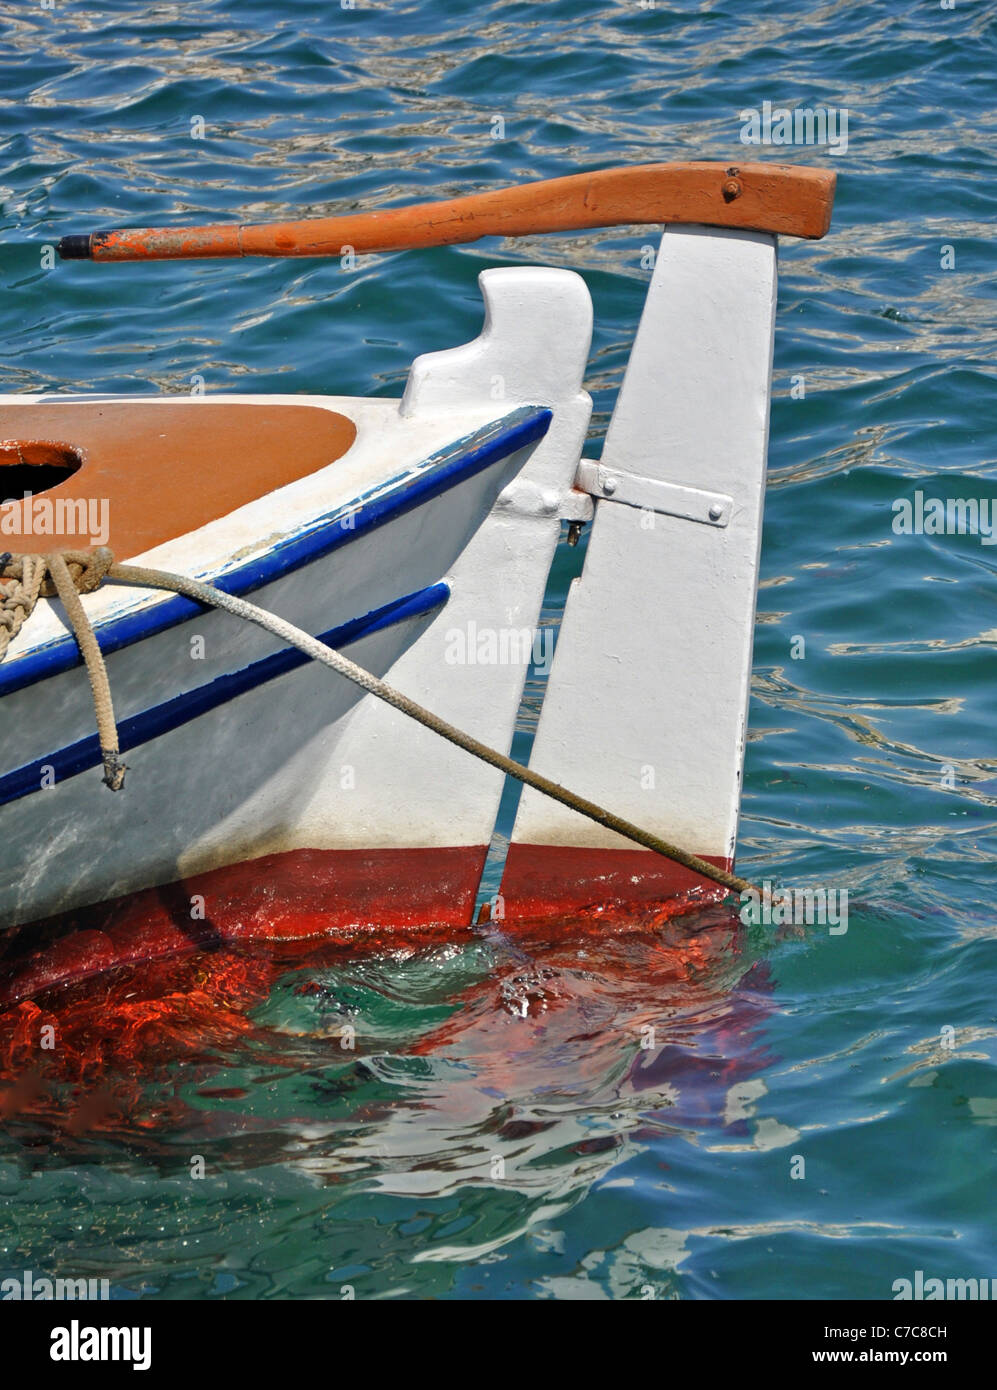 Rudder and tiller of small fishing boat Stock Photo: 38993377 - Alamy